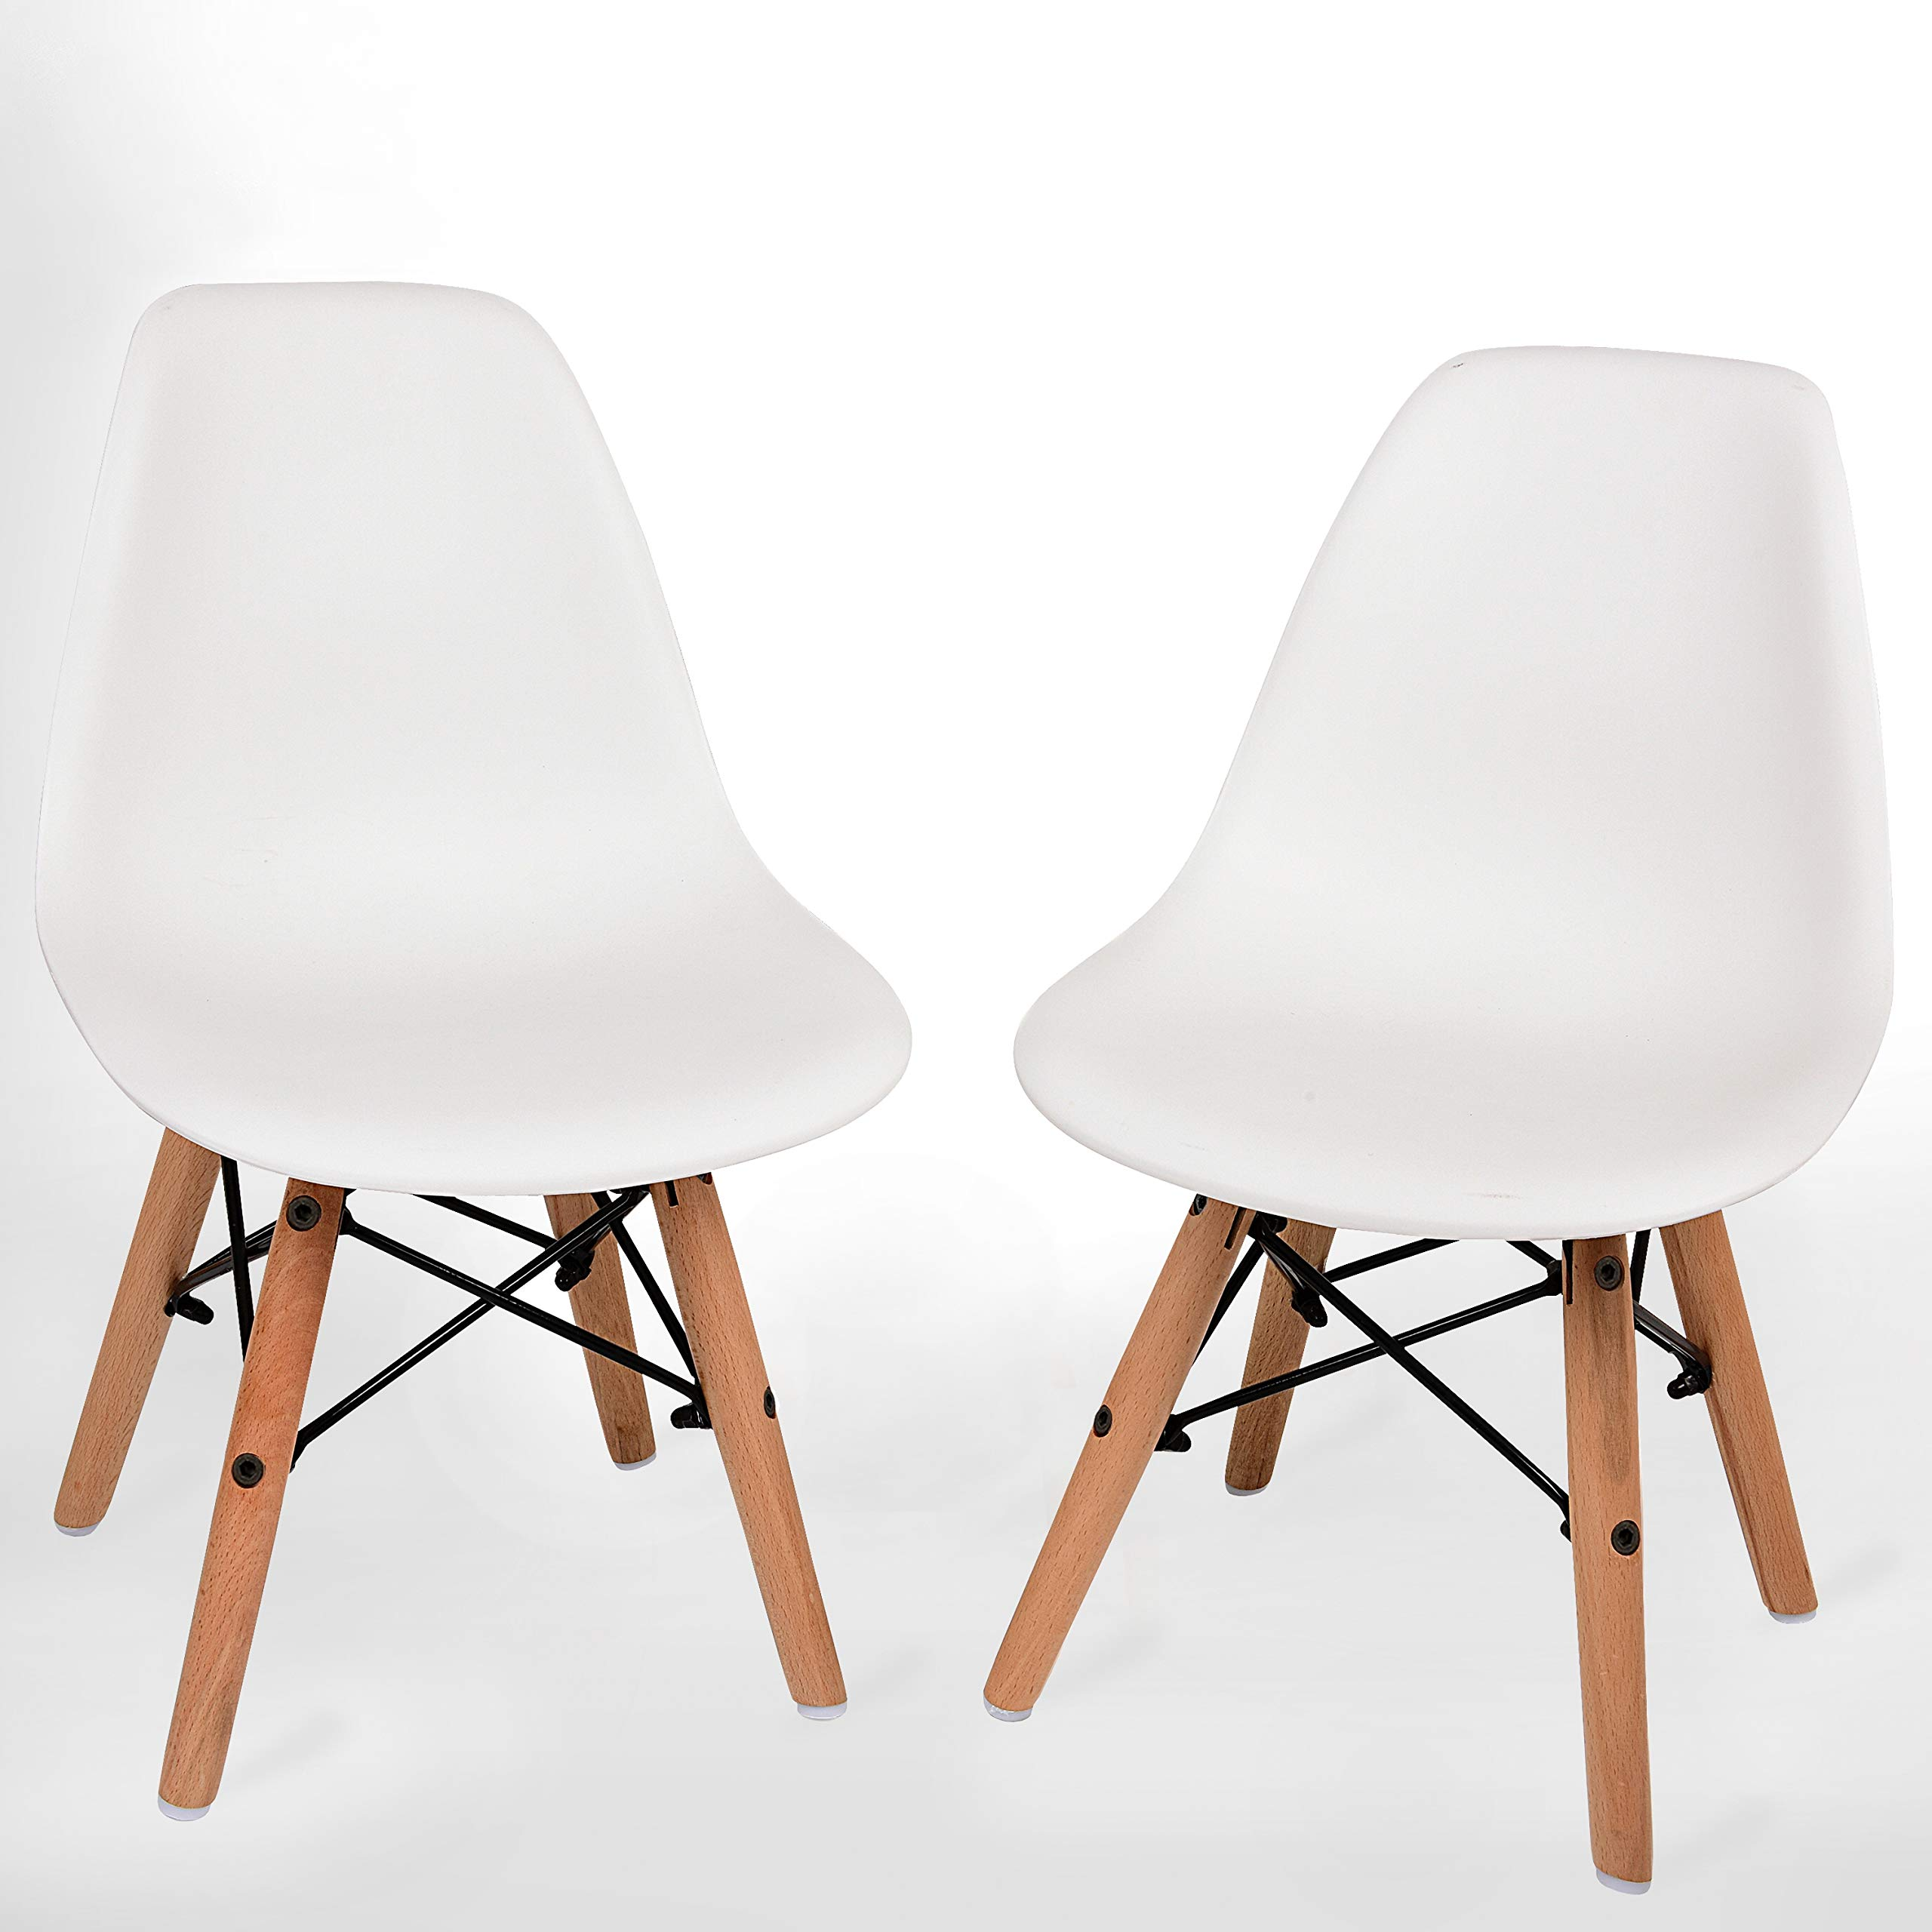 UrbanMod Kids Modern Style Chairs, [Set of 2] ABS Easy-Clean Chairs!! Highest Strength Capacity (330lbs)! by UrbanMod